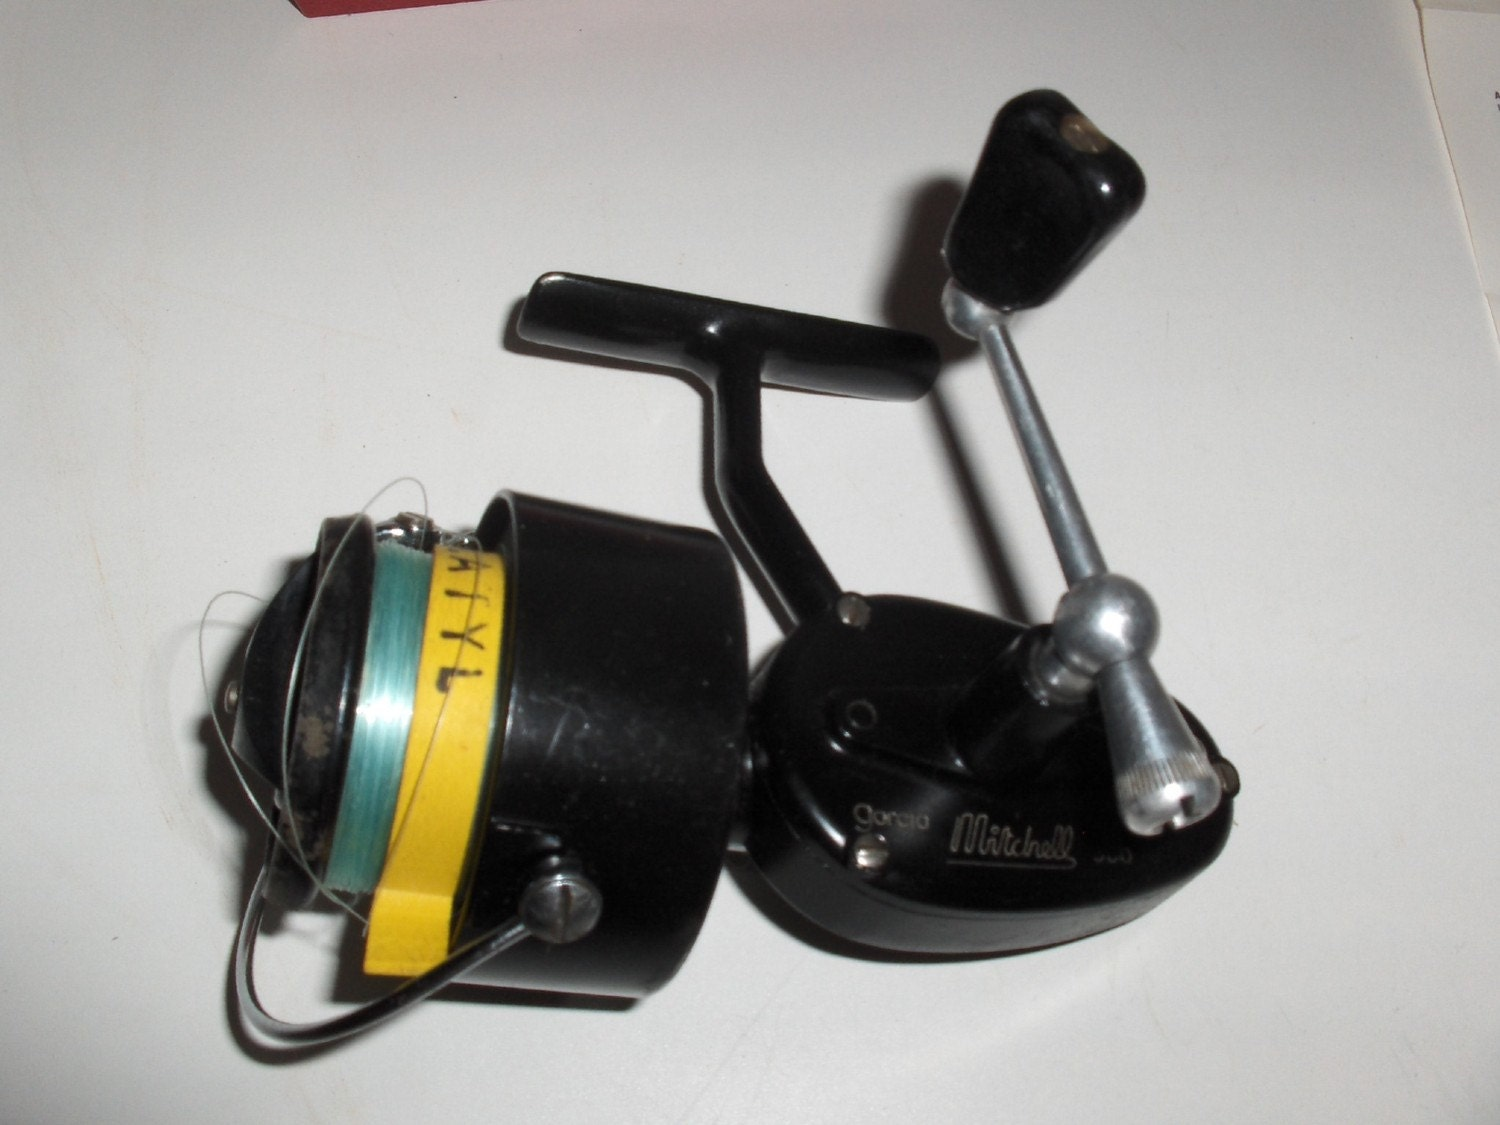 Vintage mitchell garcia 300 spinning reel by thetoolroom for Mitchell 300 fishing reel